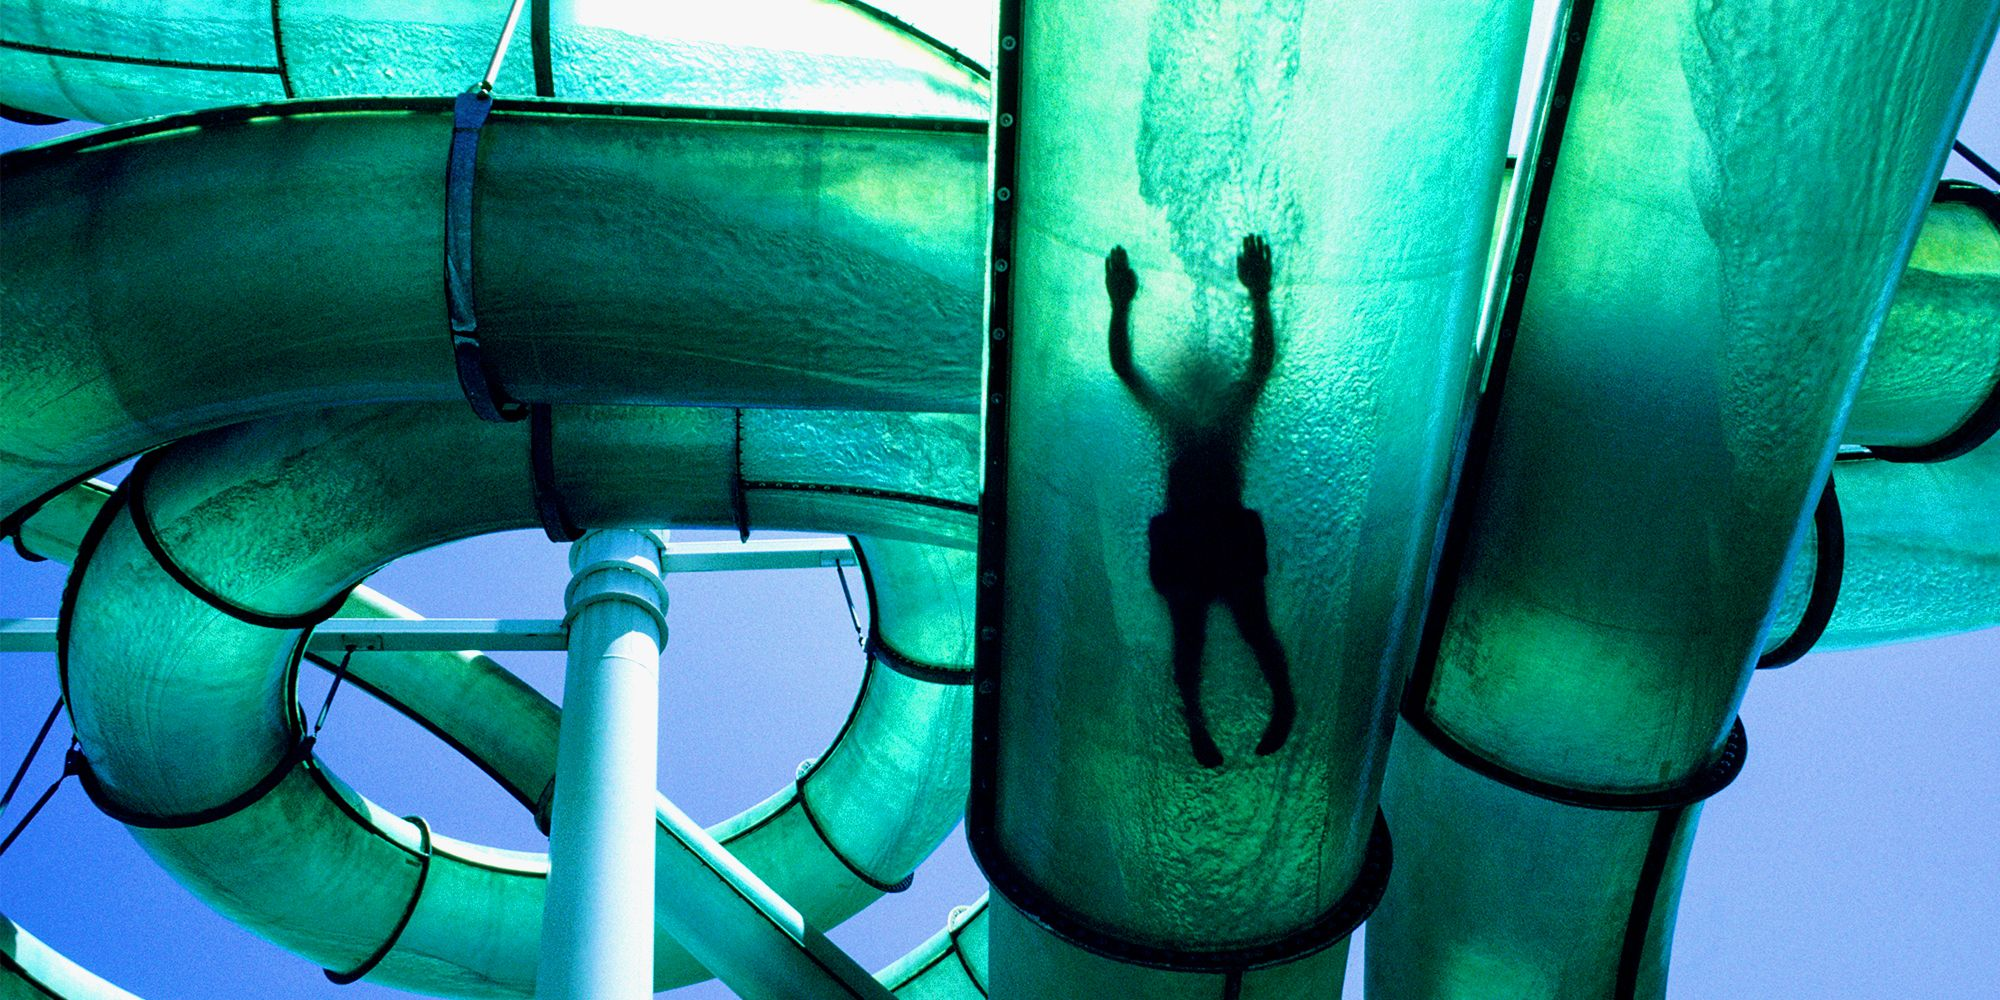 5 Biggest Water Slides in the World - Scary Water Slides